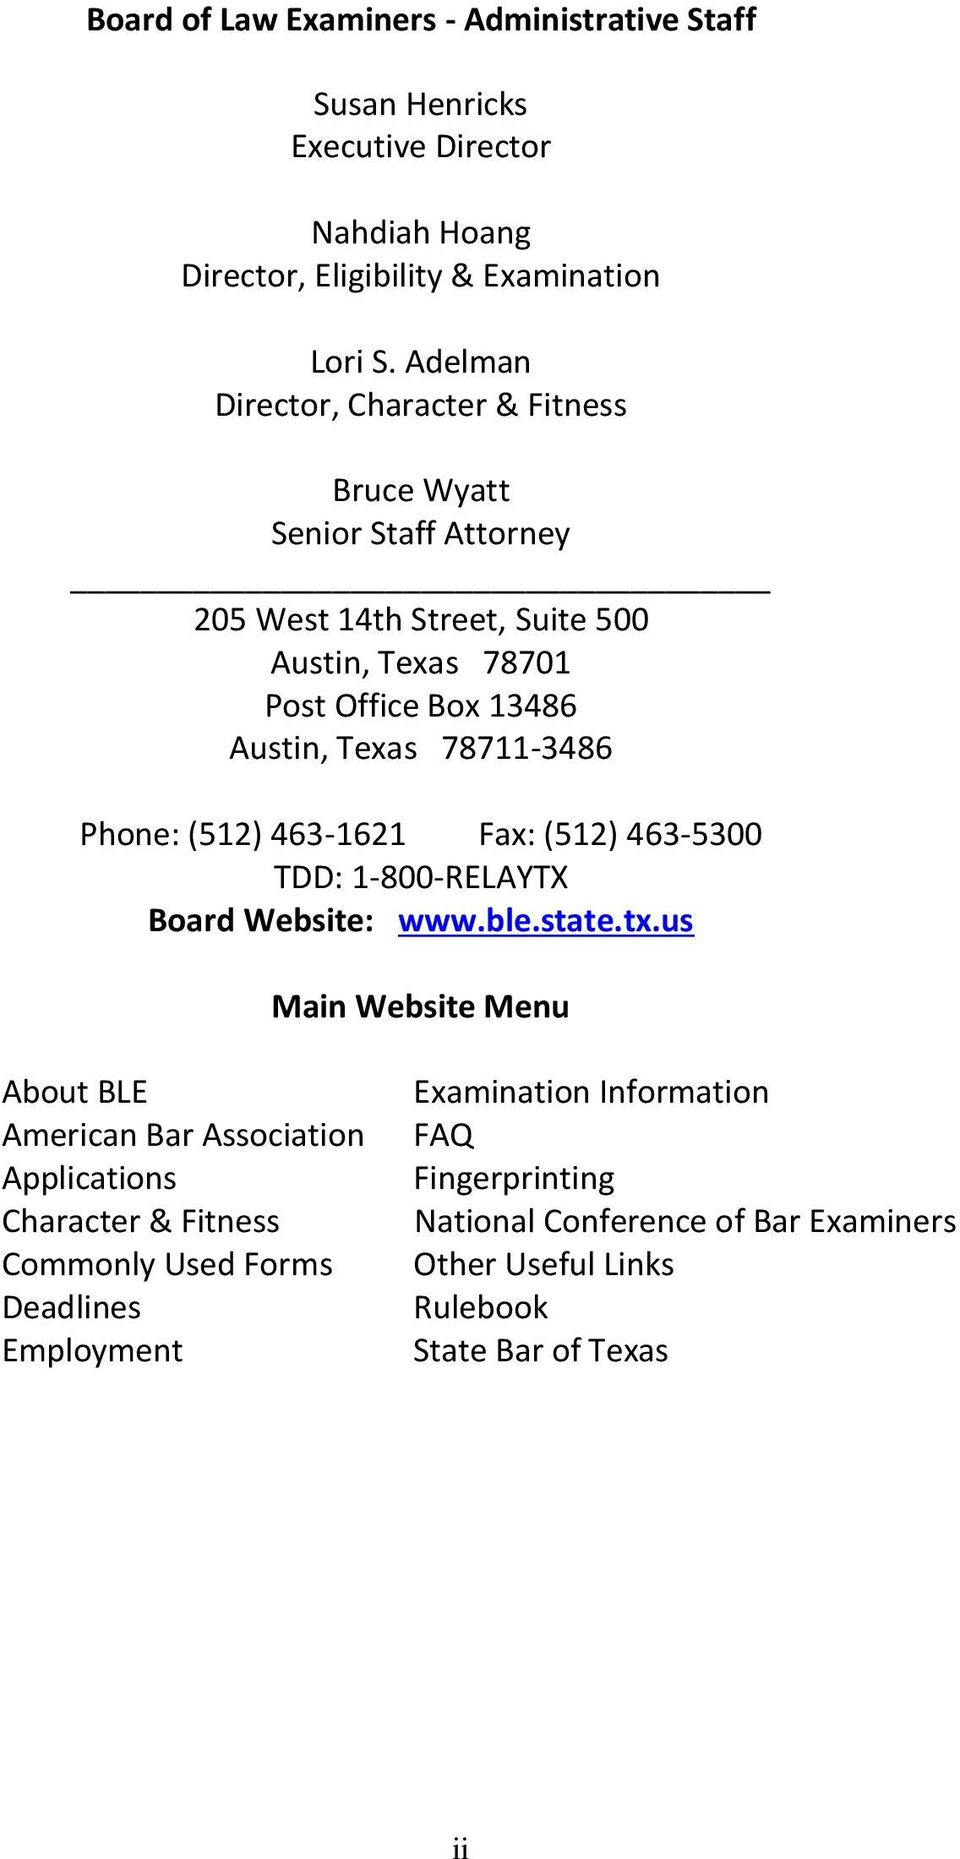 78711-3486 Phone: (512) 463-1621 Fax: (512) 463-5300 TDD: 1-800-RELAYTX Board Website: www.ble.state.tx.